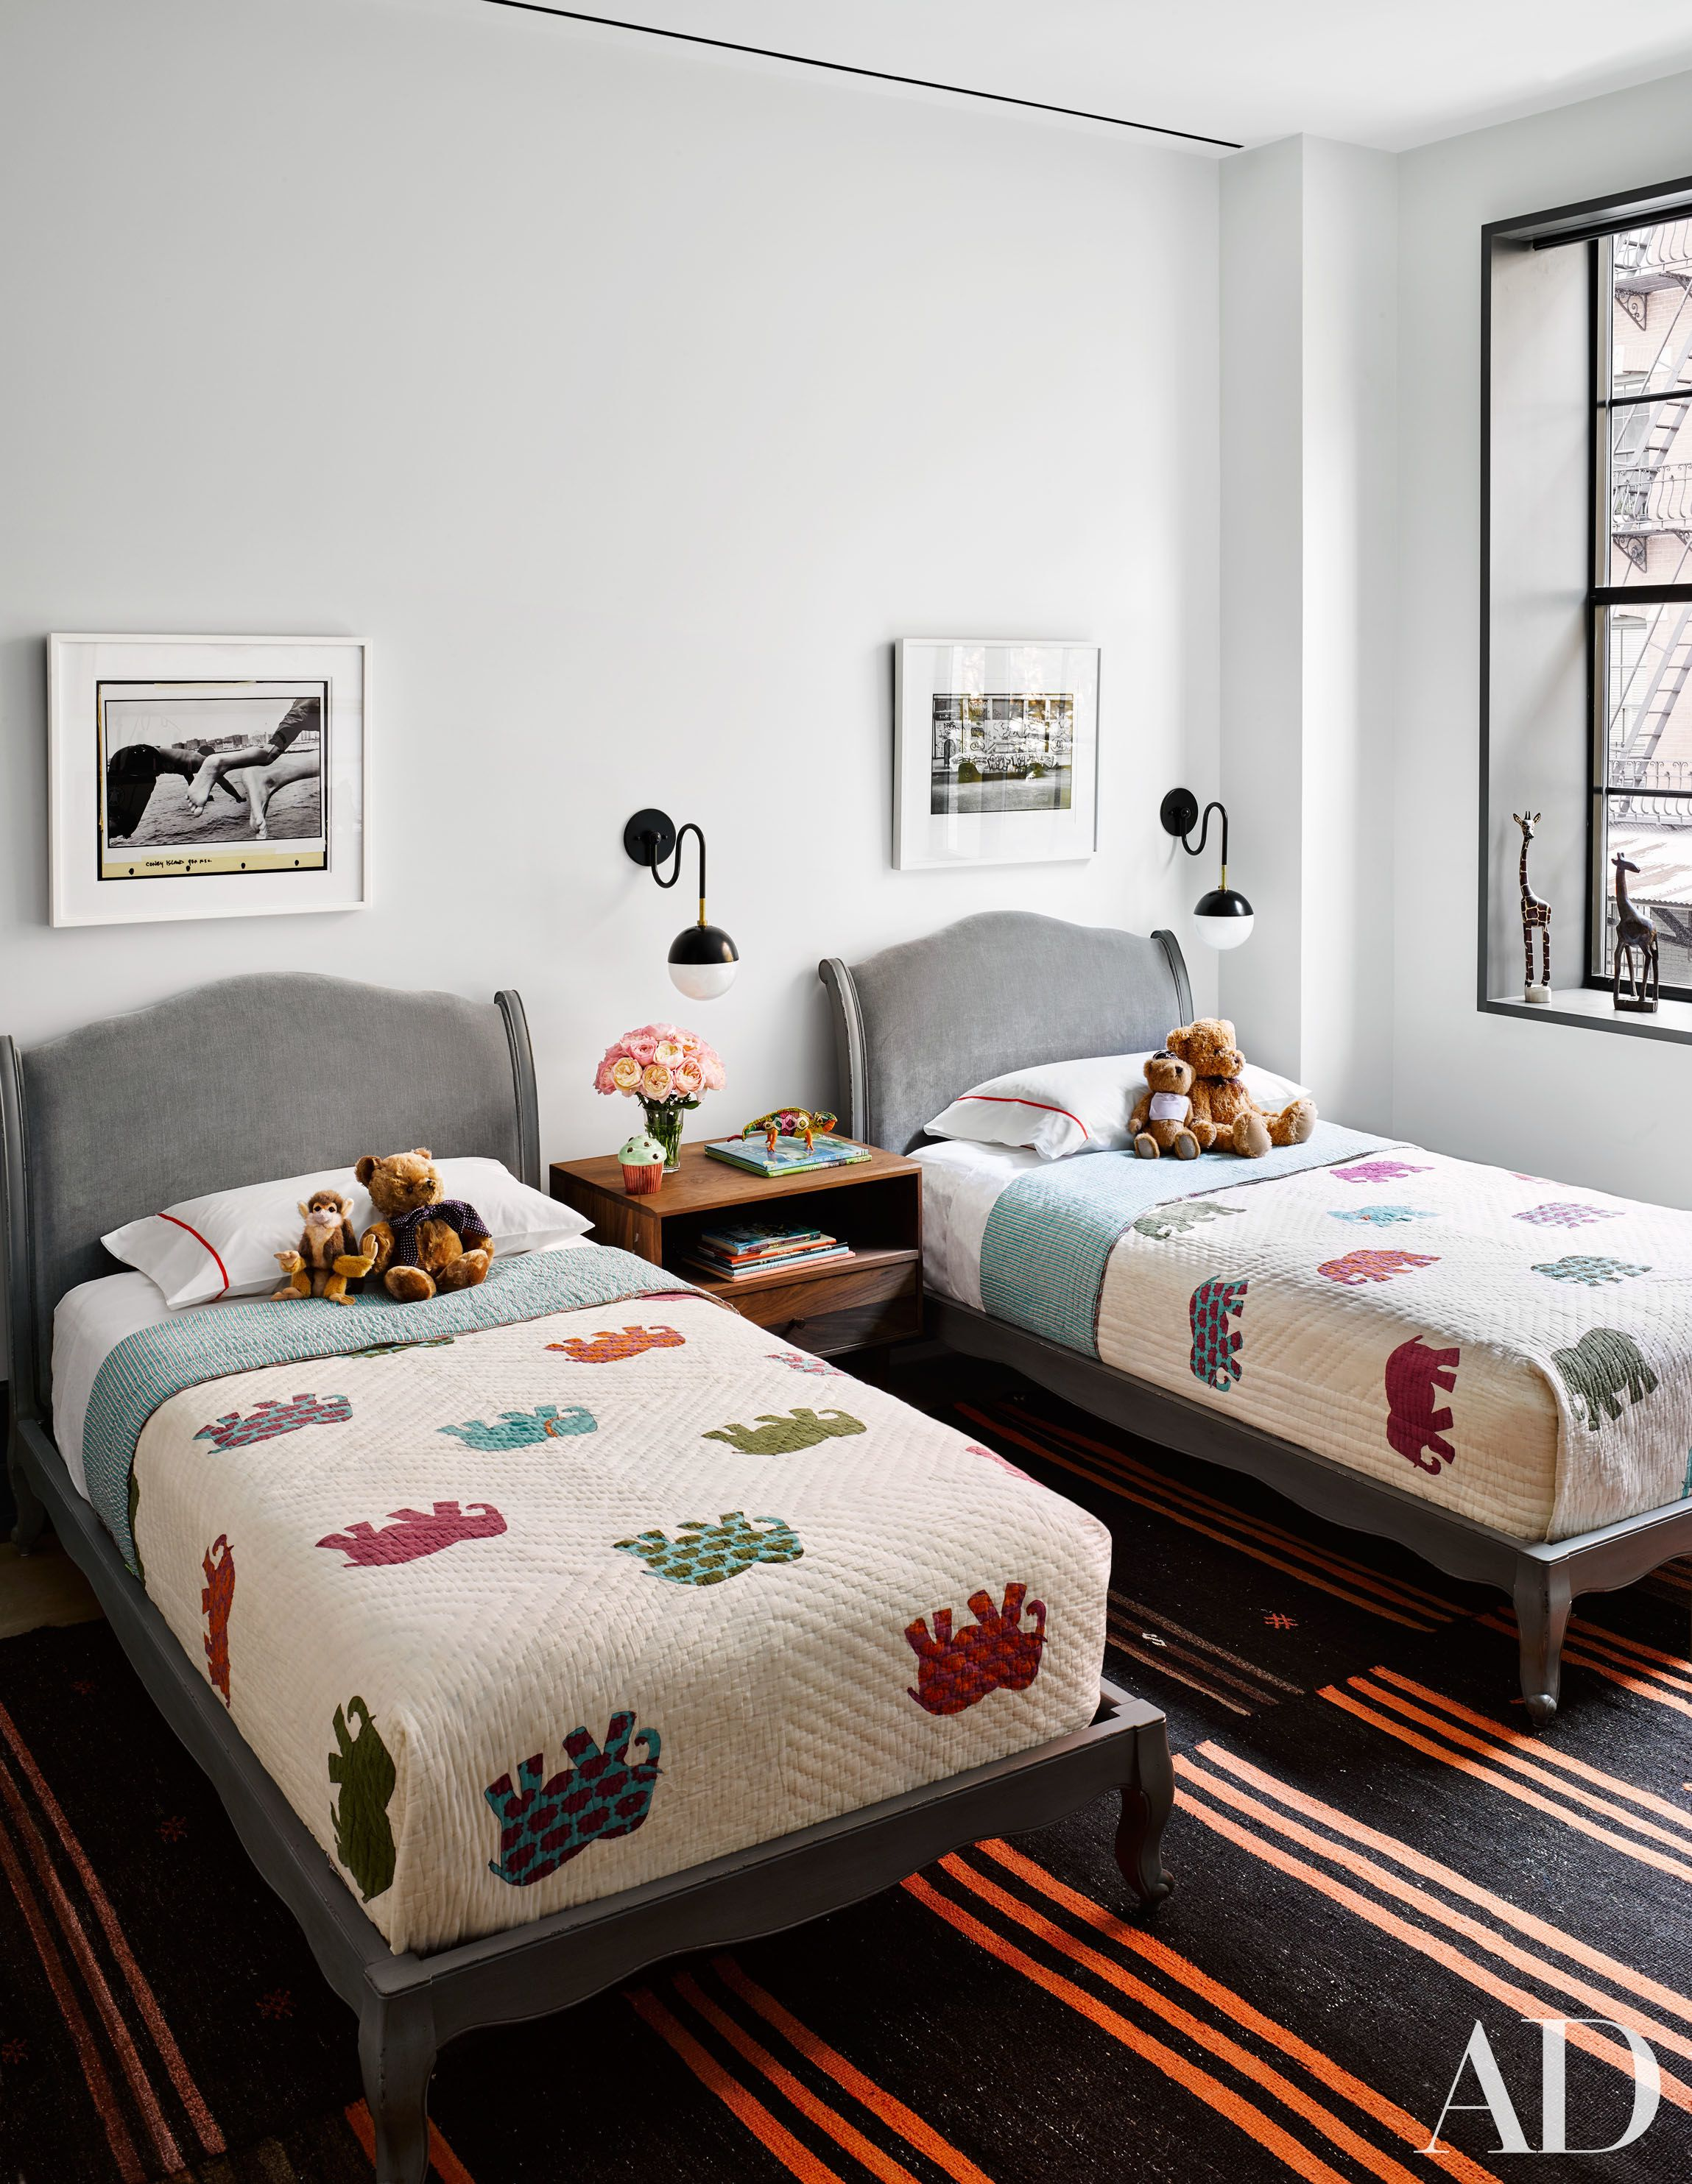 Twin Boys Bedroom Ideas: Naomi Watts And Liev Schreiber's Stunning New York City